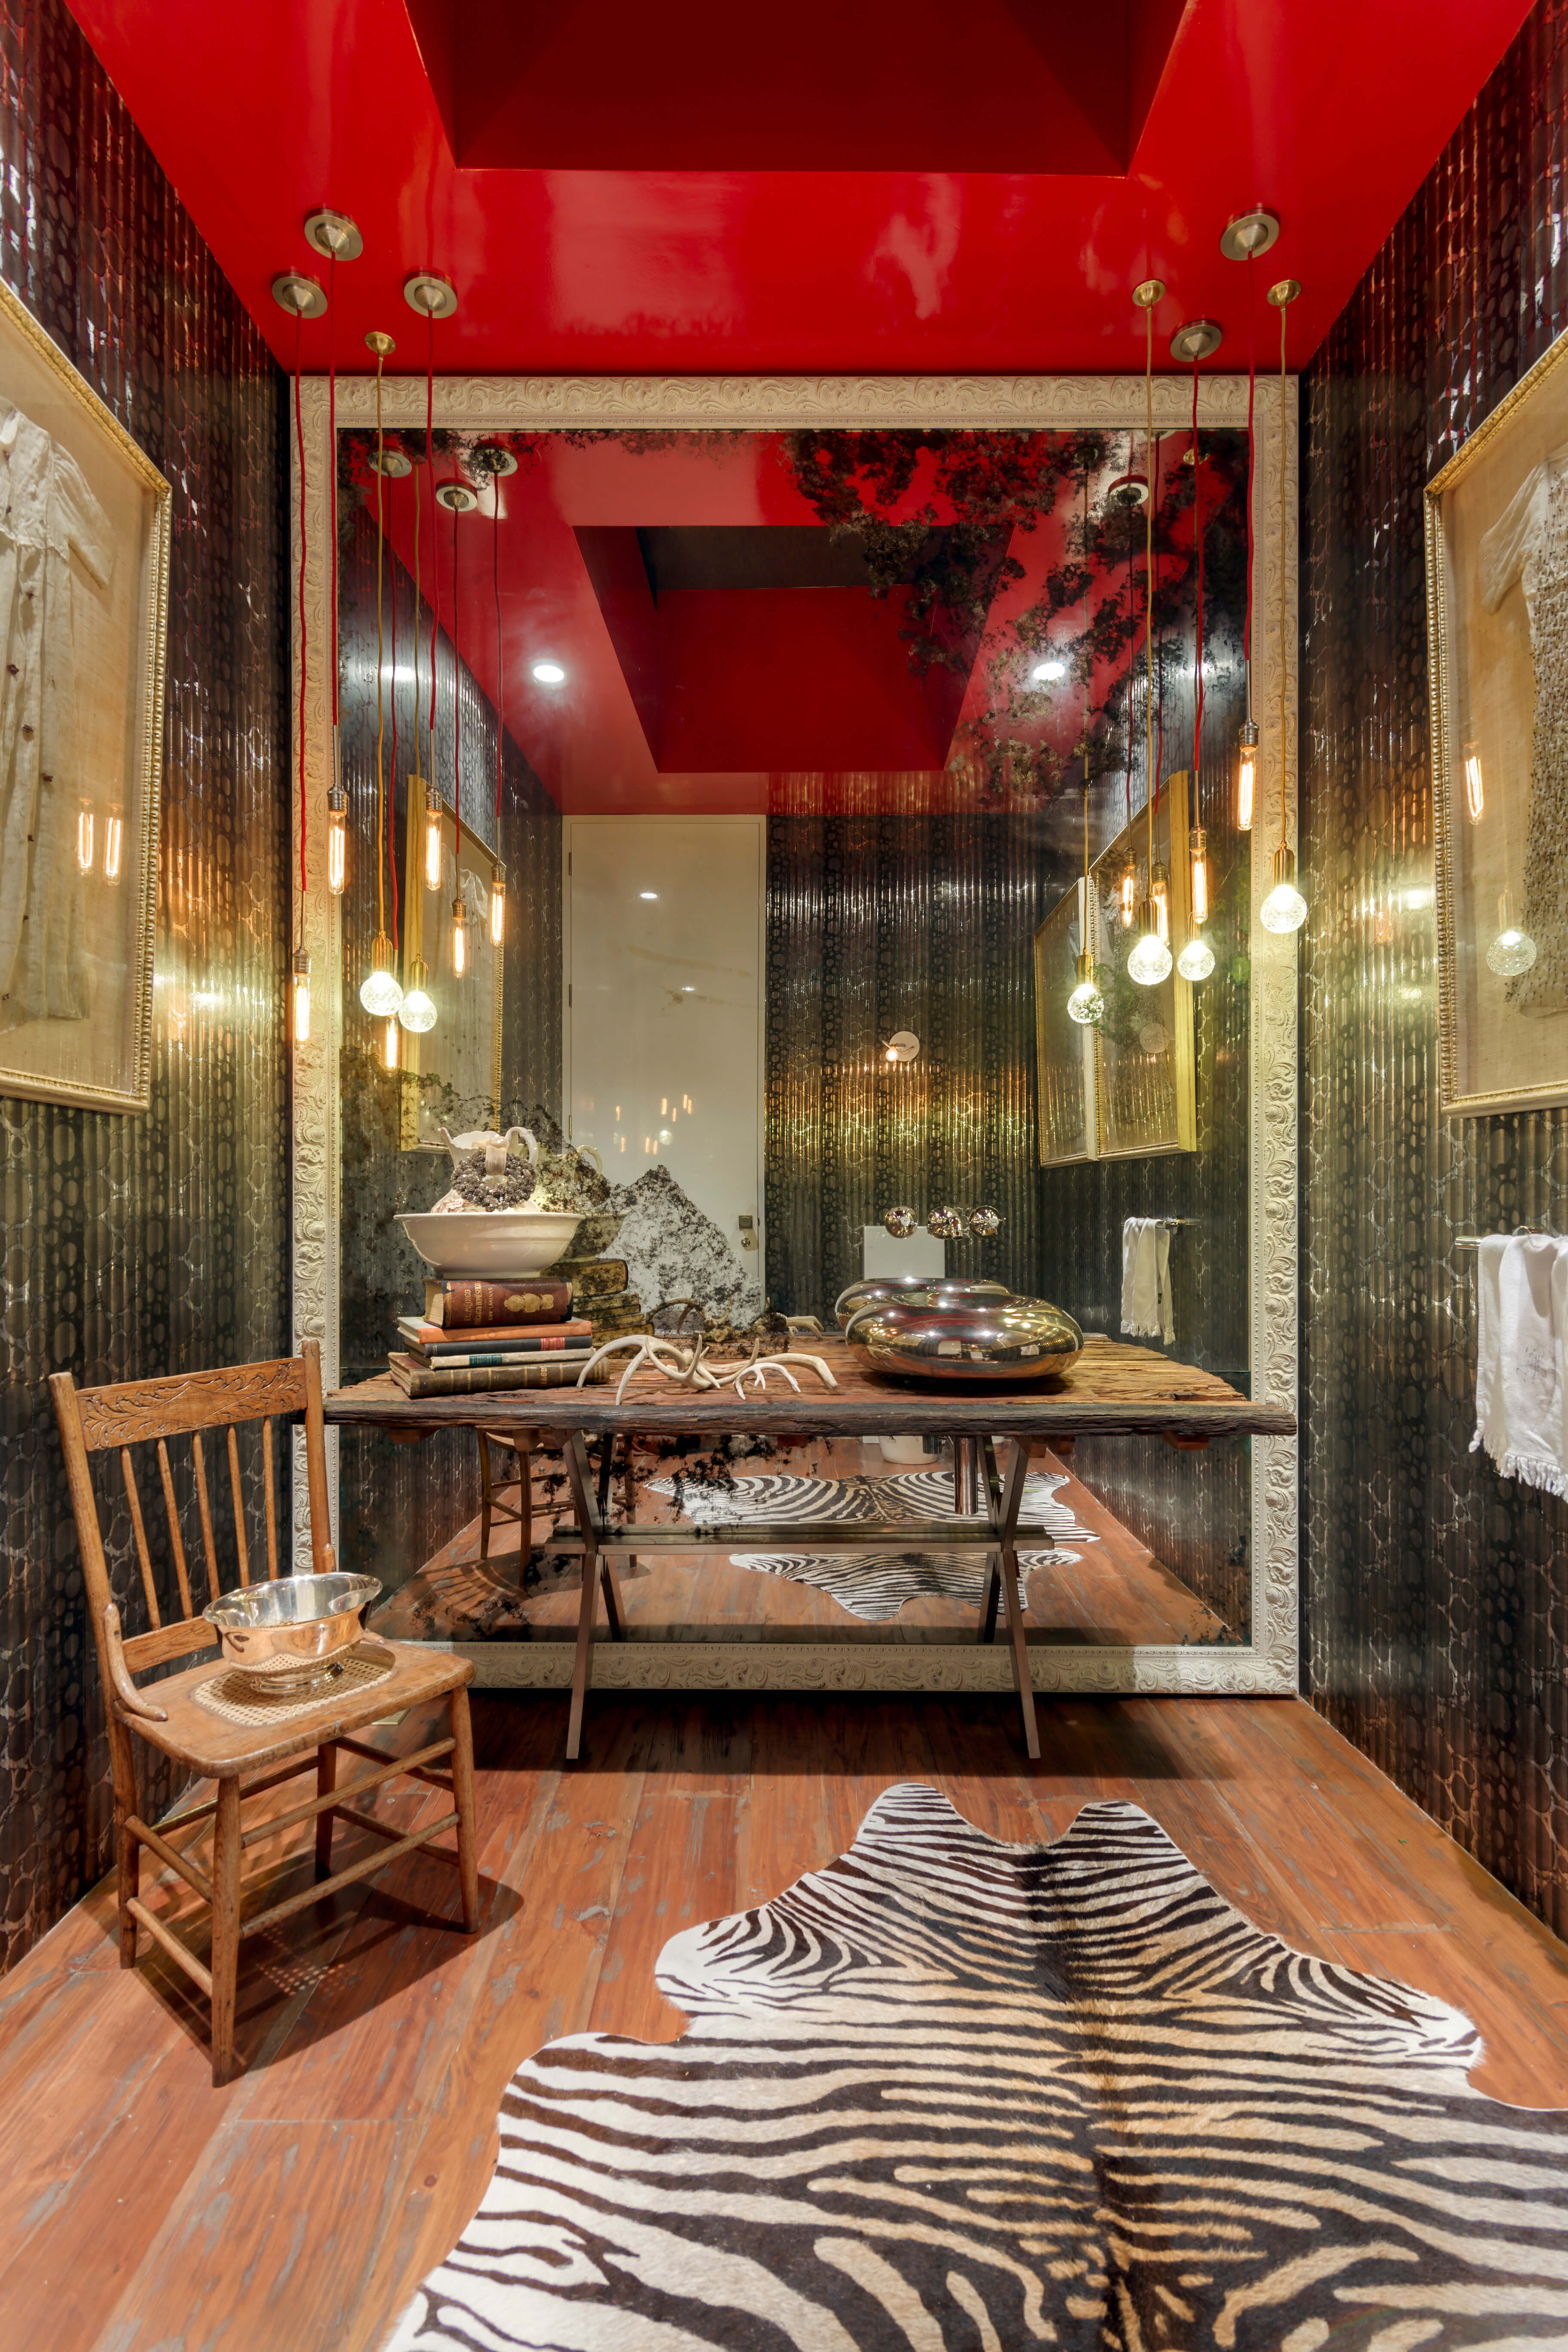 The ultra-evocative bathroom sports hardwood flooring and a rustic vanity, contrasting with reflective walls and a room-size mirror. An innovative vessel sink sparkles in chrome, with mirror-mounted plumbing above.